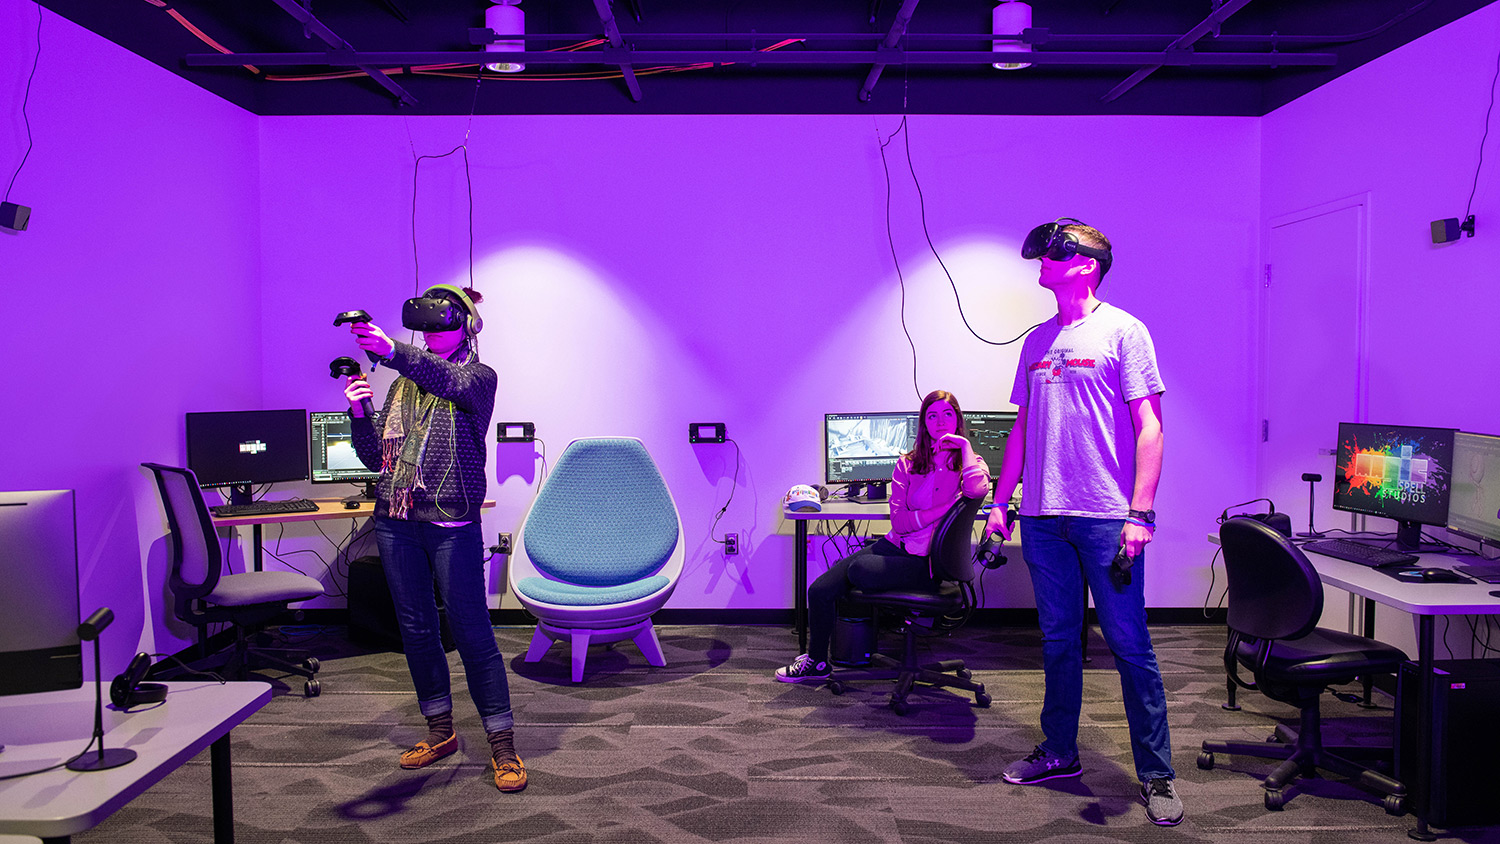 Two students stand wearing VR goggles and holding controllers in room with chairs and computers